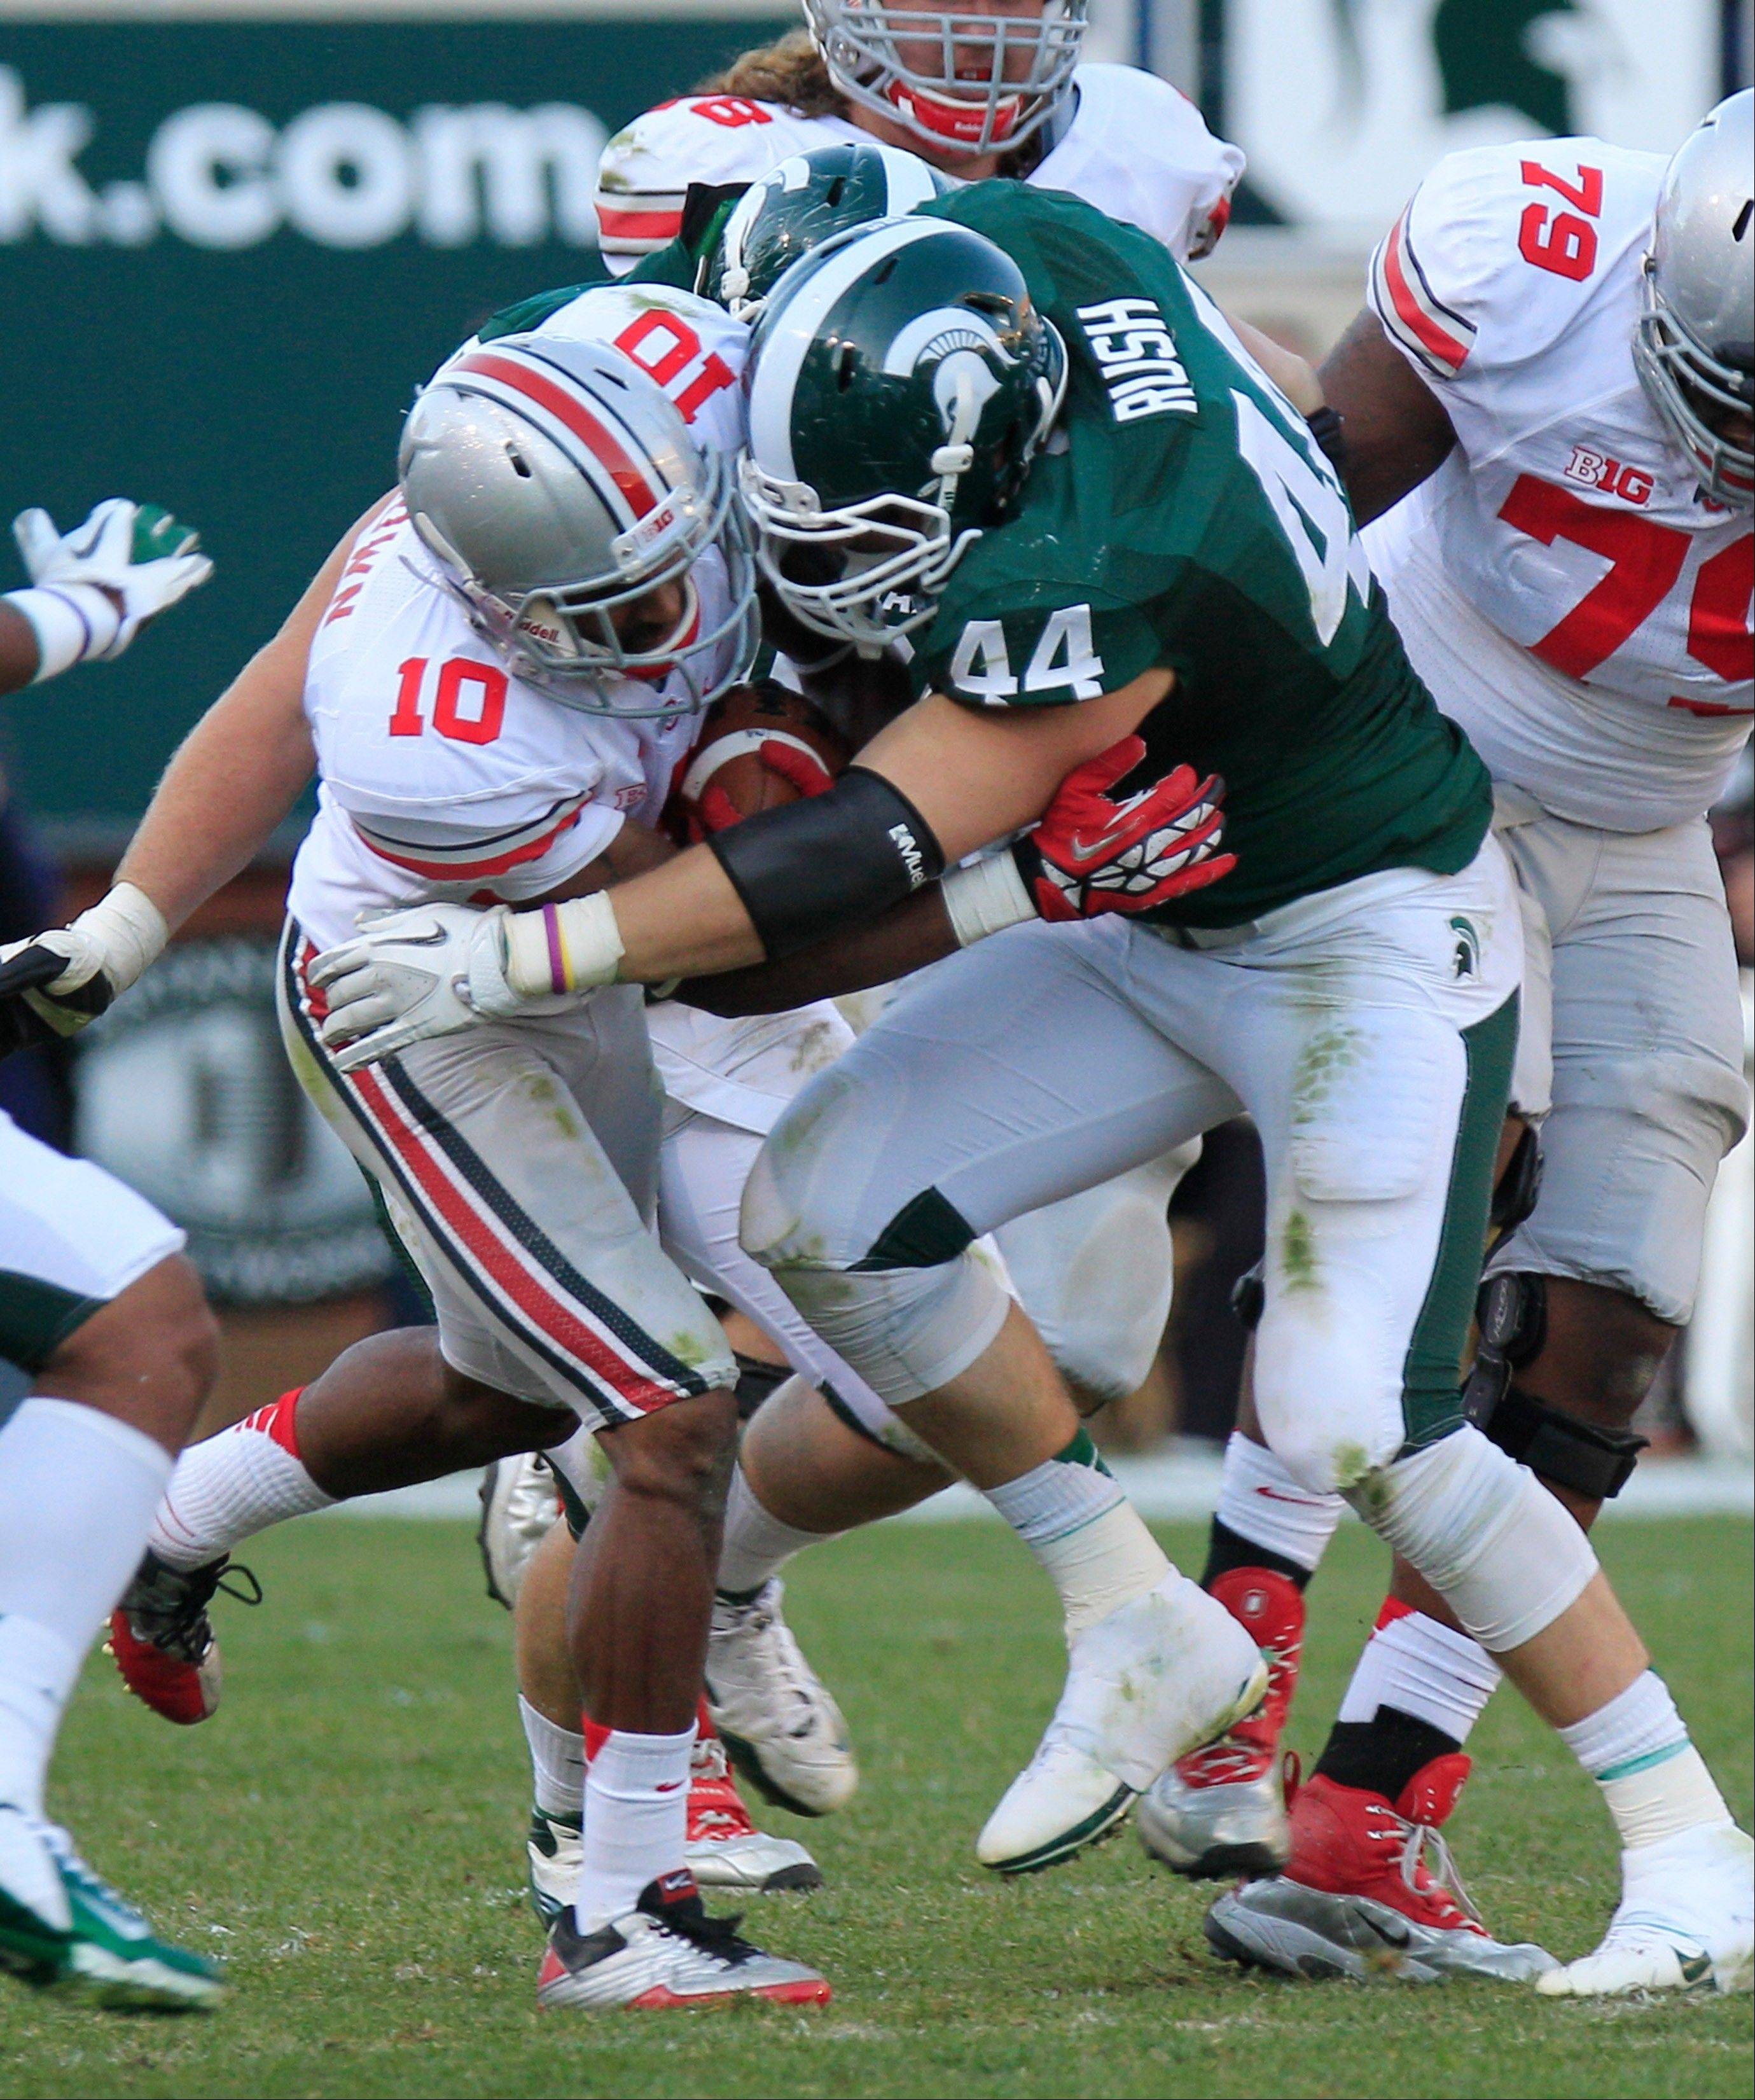 Ohio State wide receiver Philly Brown tries to get away from Michigan State defensive end Marcus Rush last Saturday in in East Lansing, Mich.